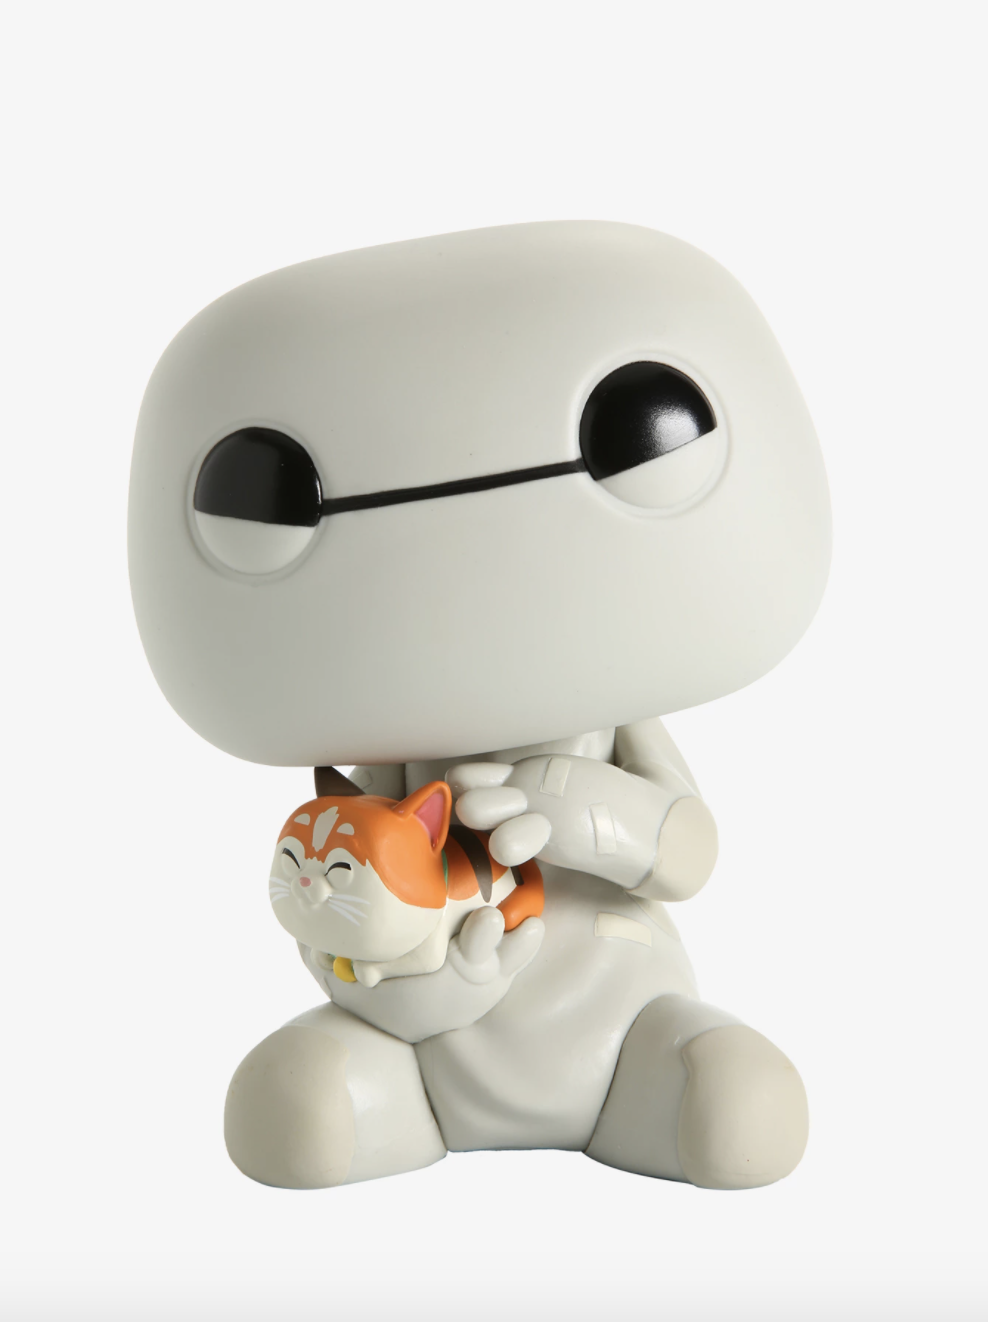 the Baymax figure happily cuddling Mochi the cat